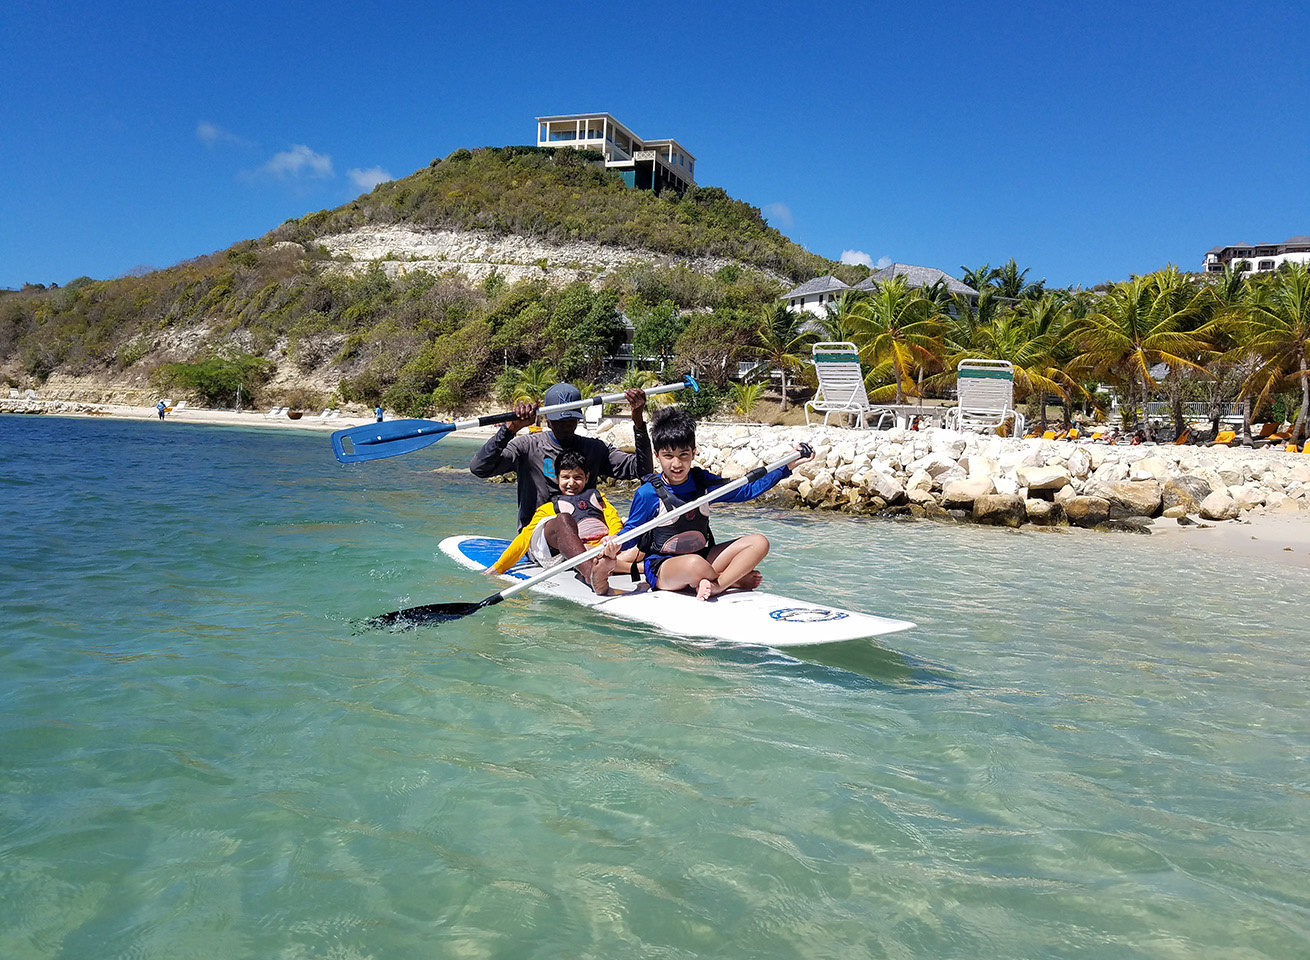 sup lesson for kids in the caribbean